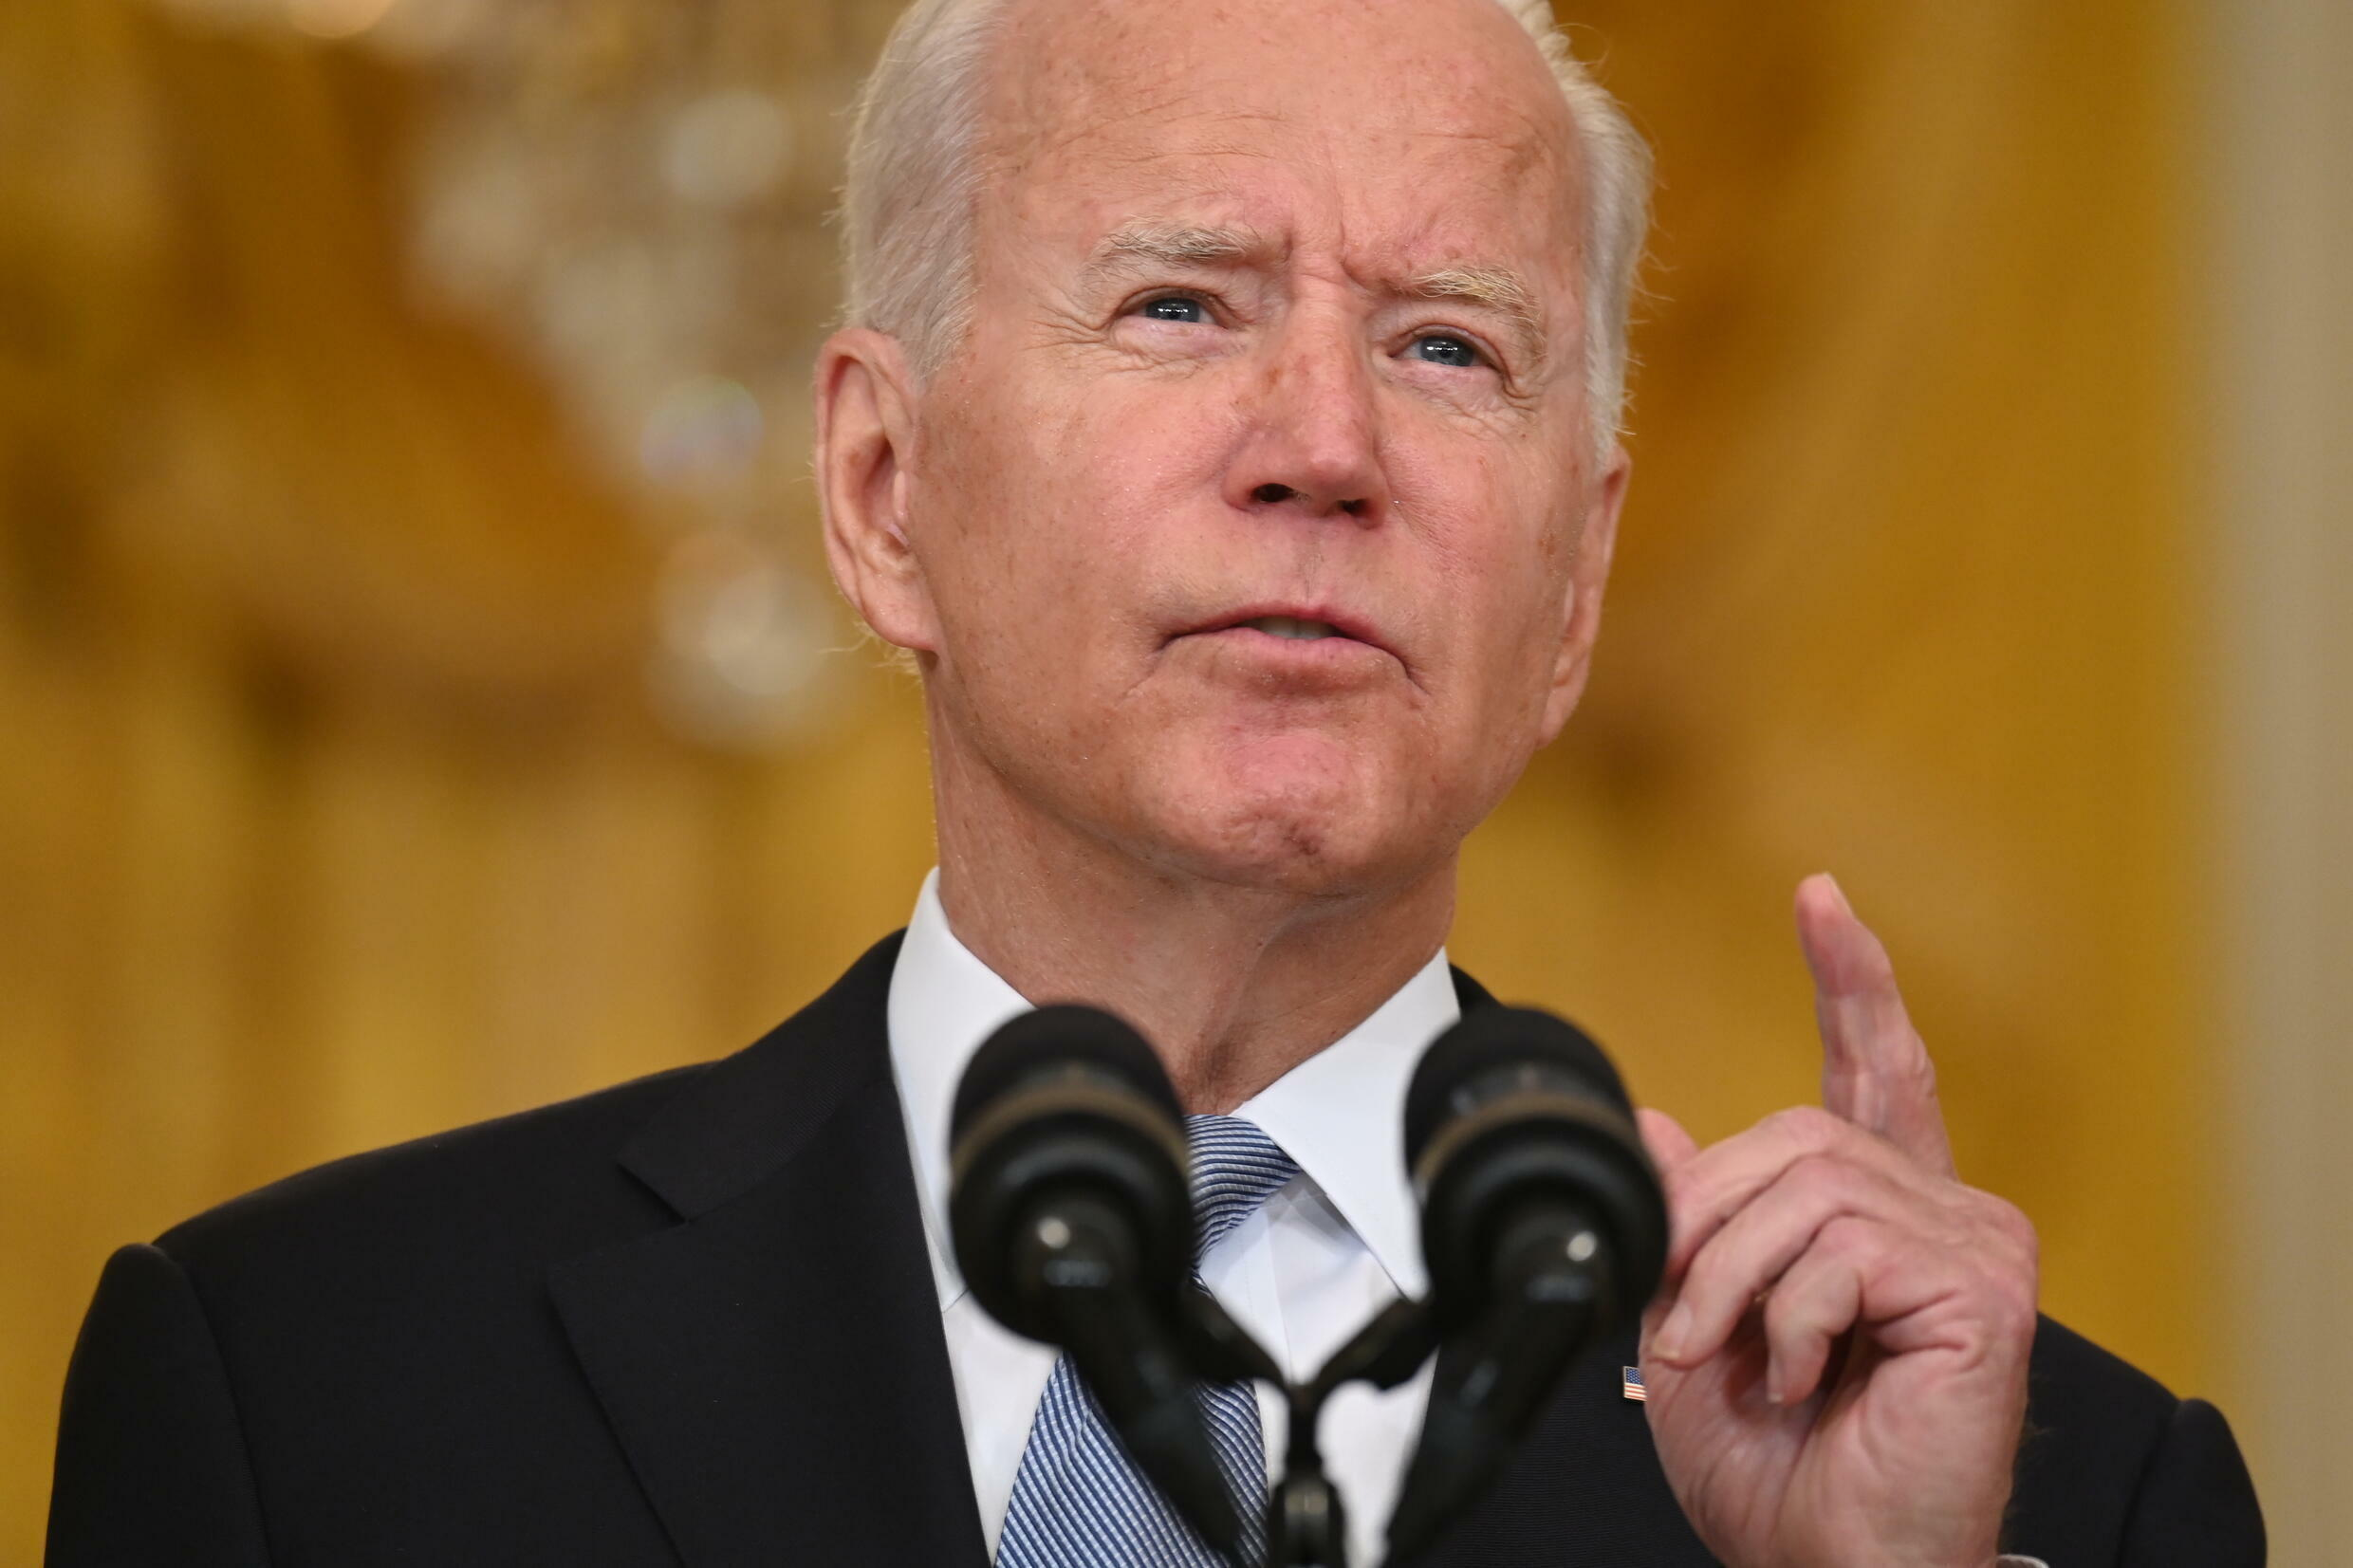 US President Joe Biden says he takes responsibility for the Afghanistan debacle but blames the country's former Western-backed leaders